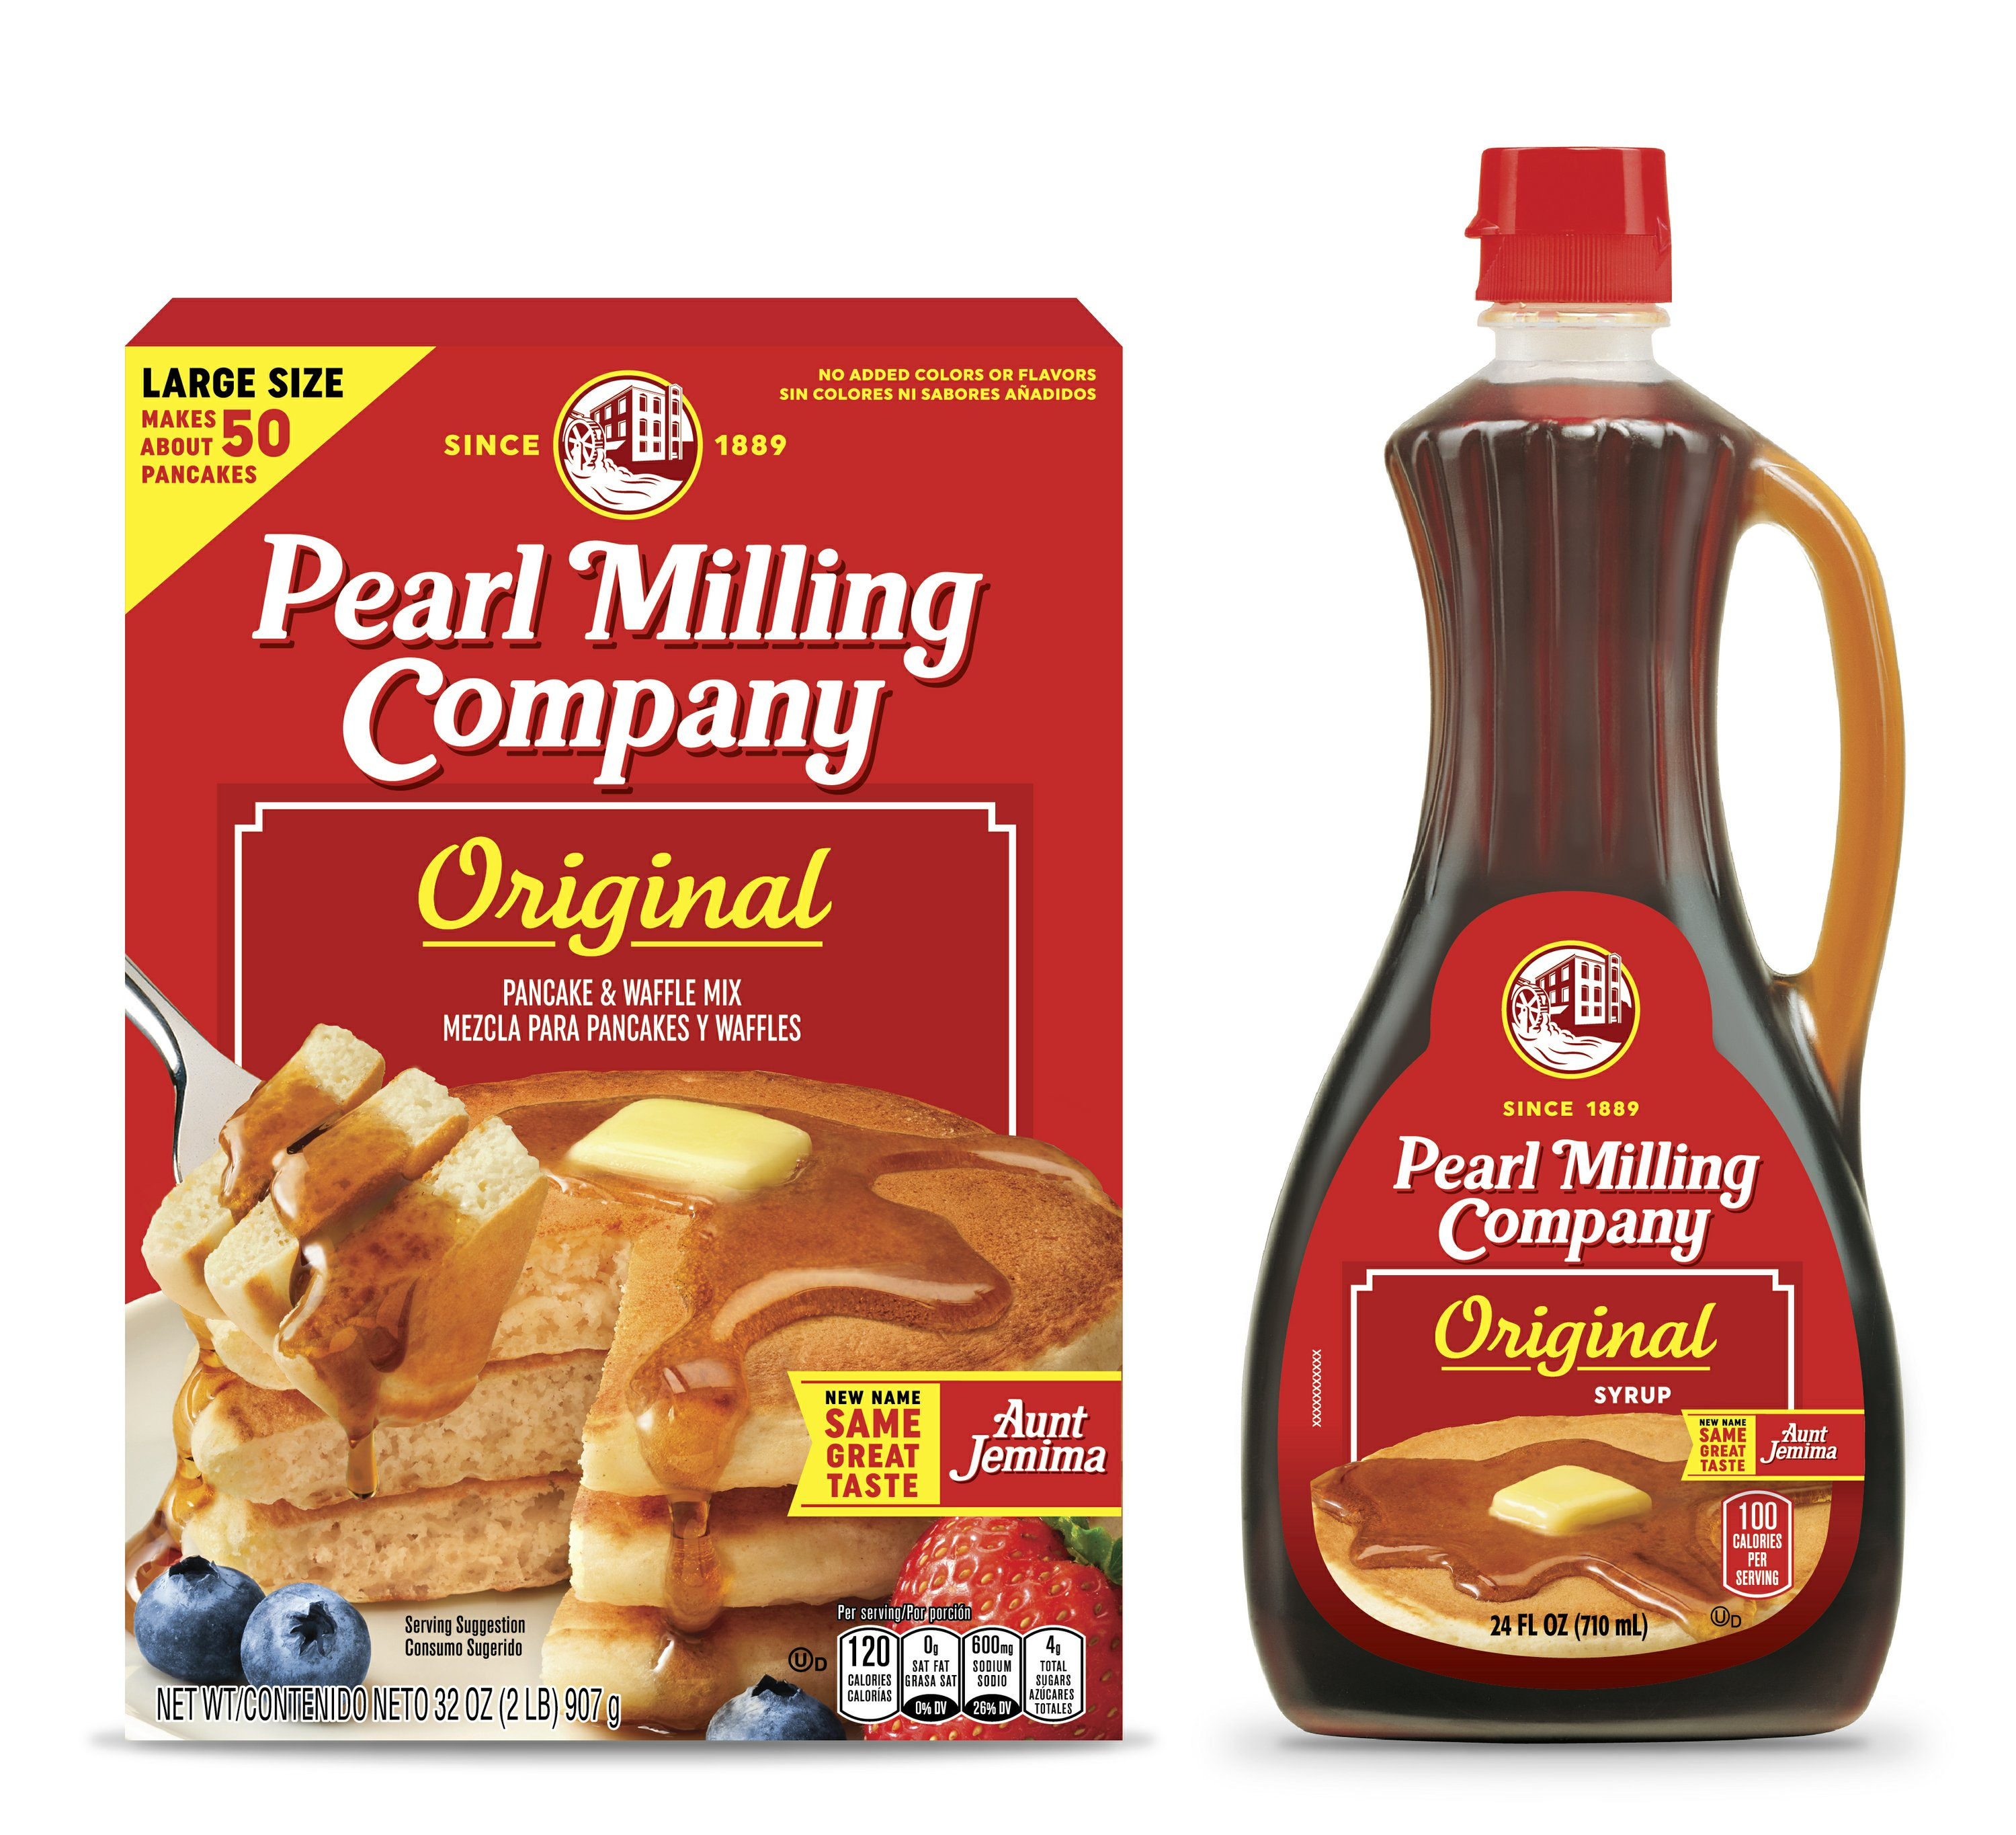 Aunt Jemima brand gets a new name: Pearl Milling Company - Associated Press